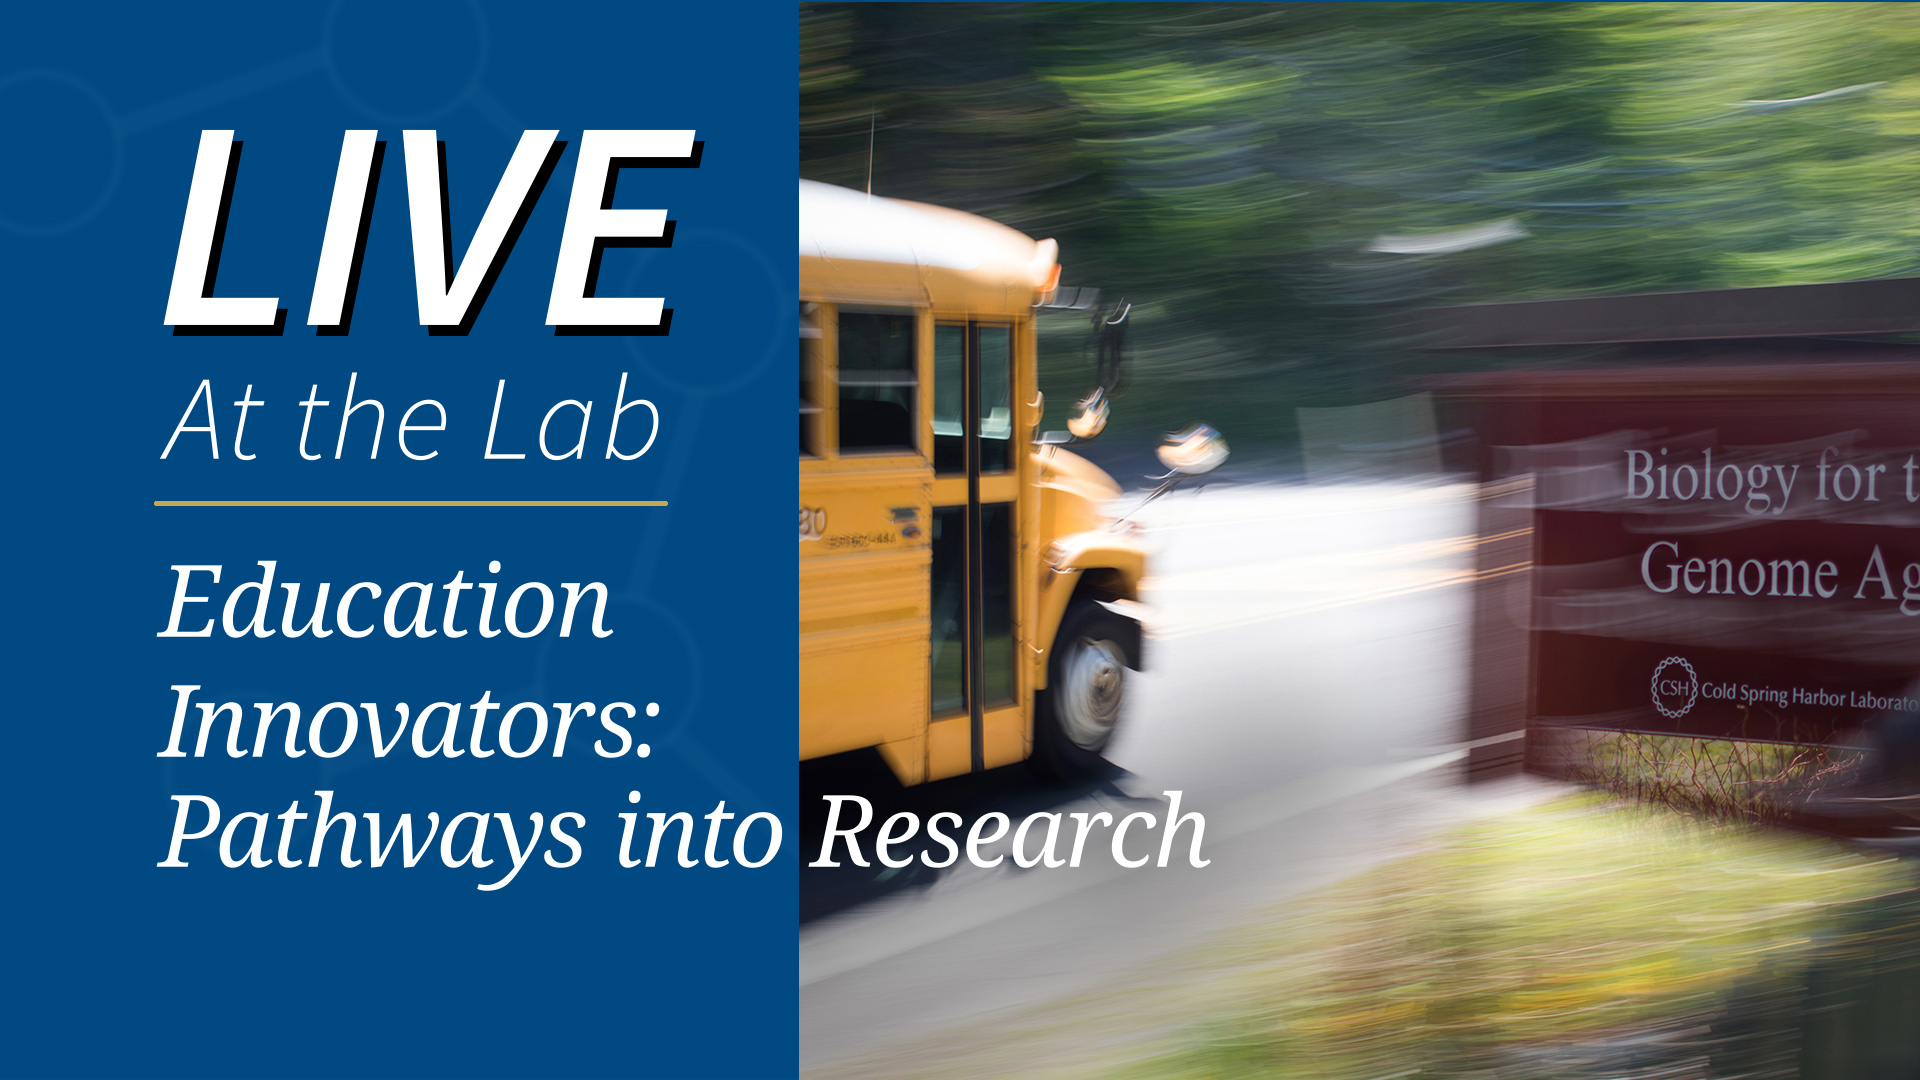 Title image of school bus driving by biology for the genome age sign in front of CSHL